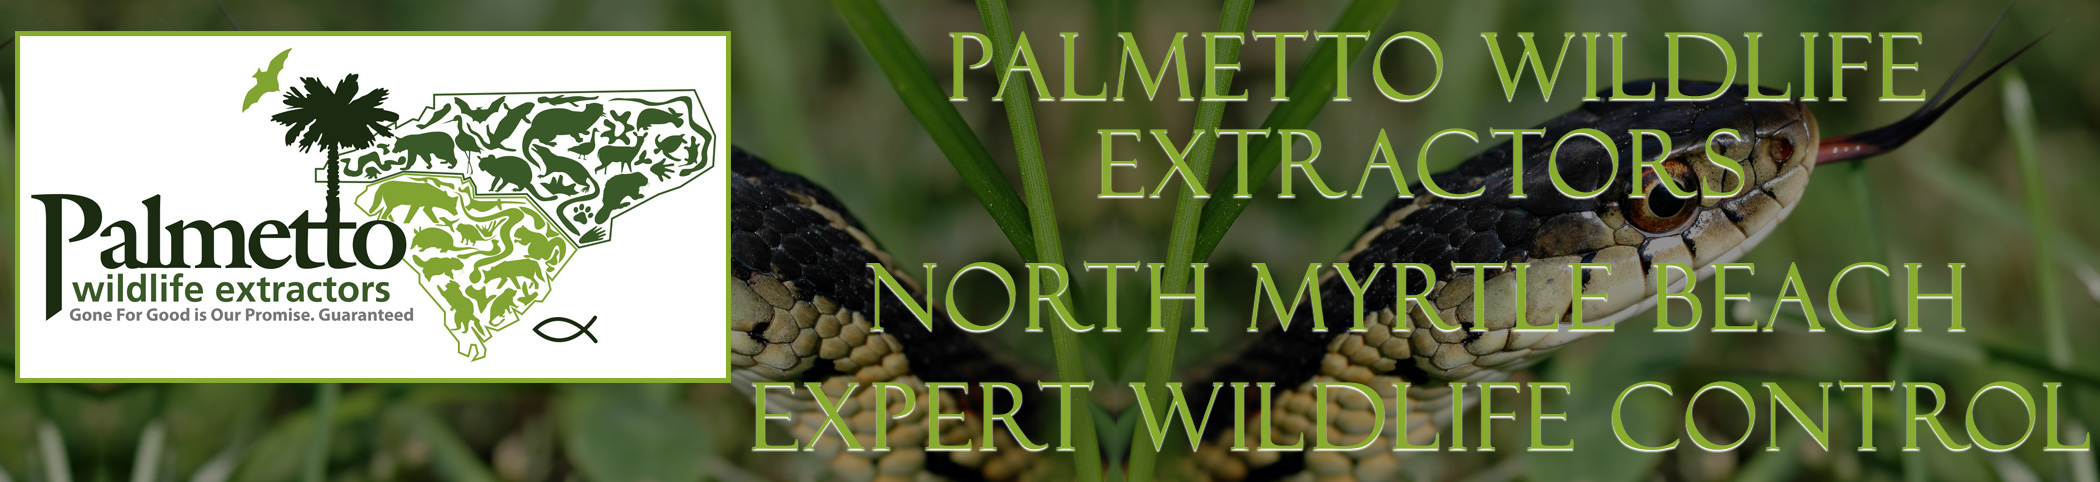 Palmetto Wildlife Extractors North Myrtle Beach South Carolina header image